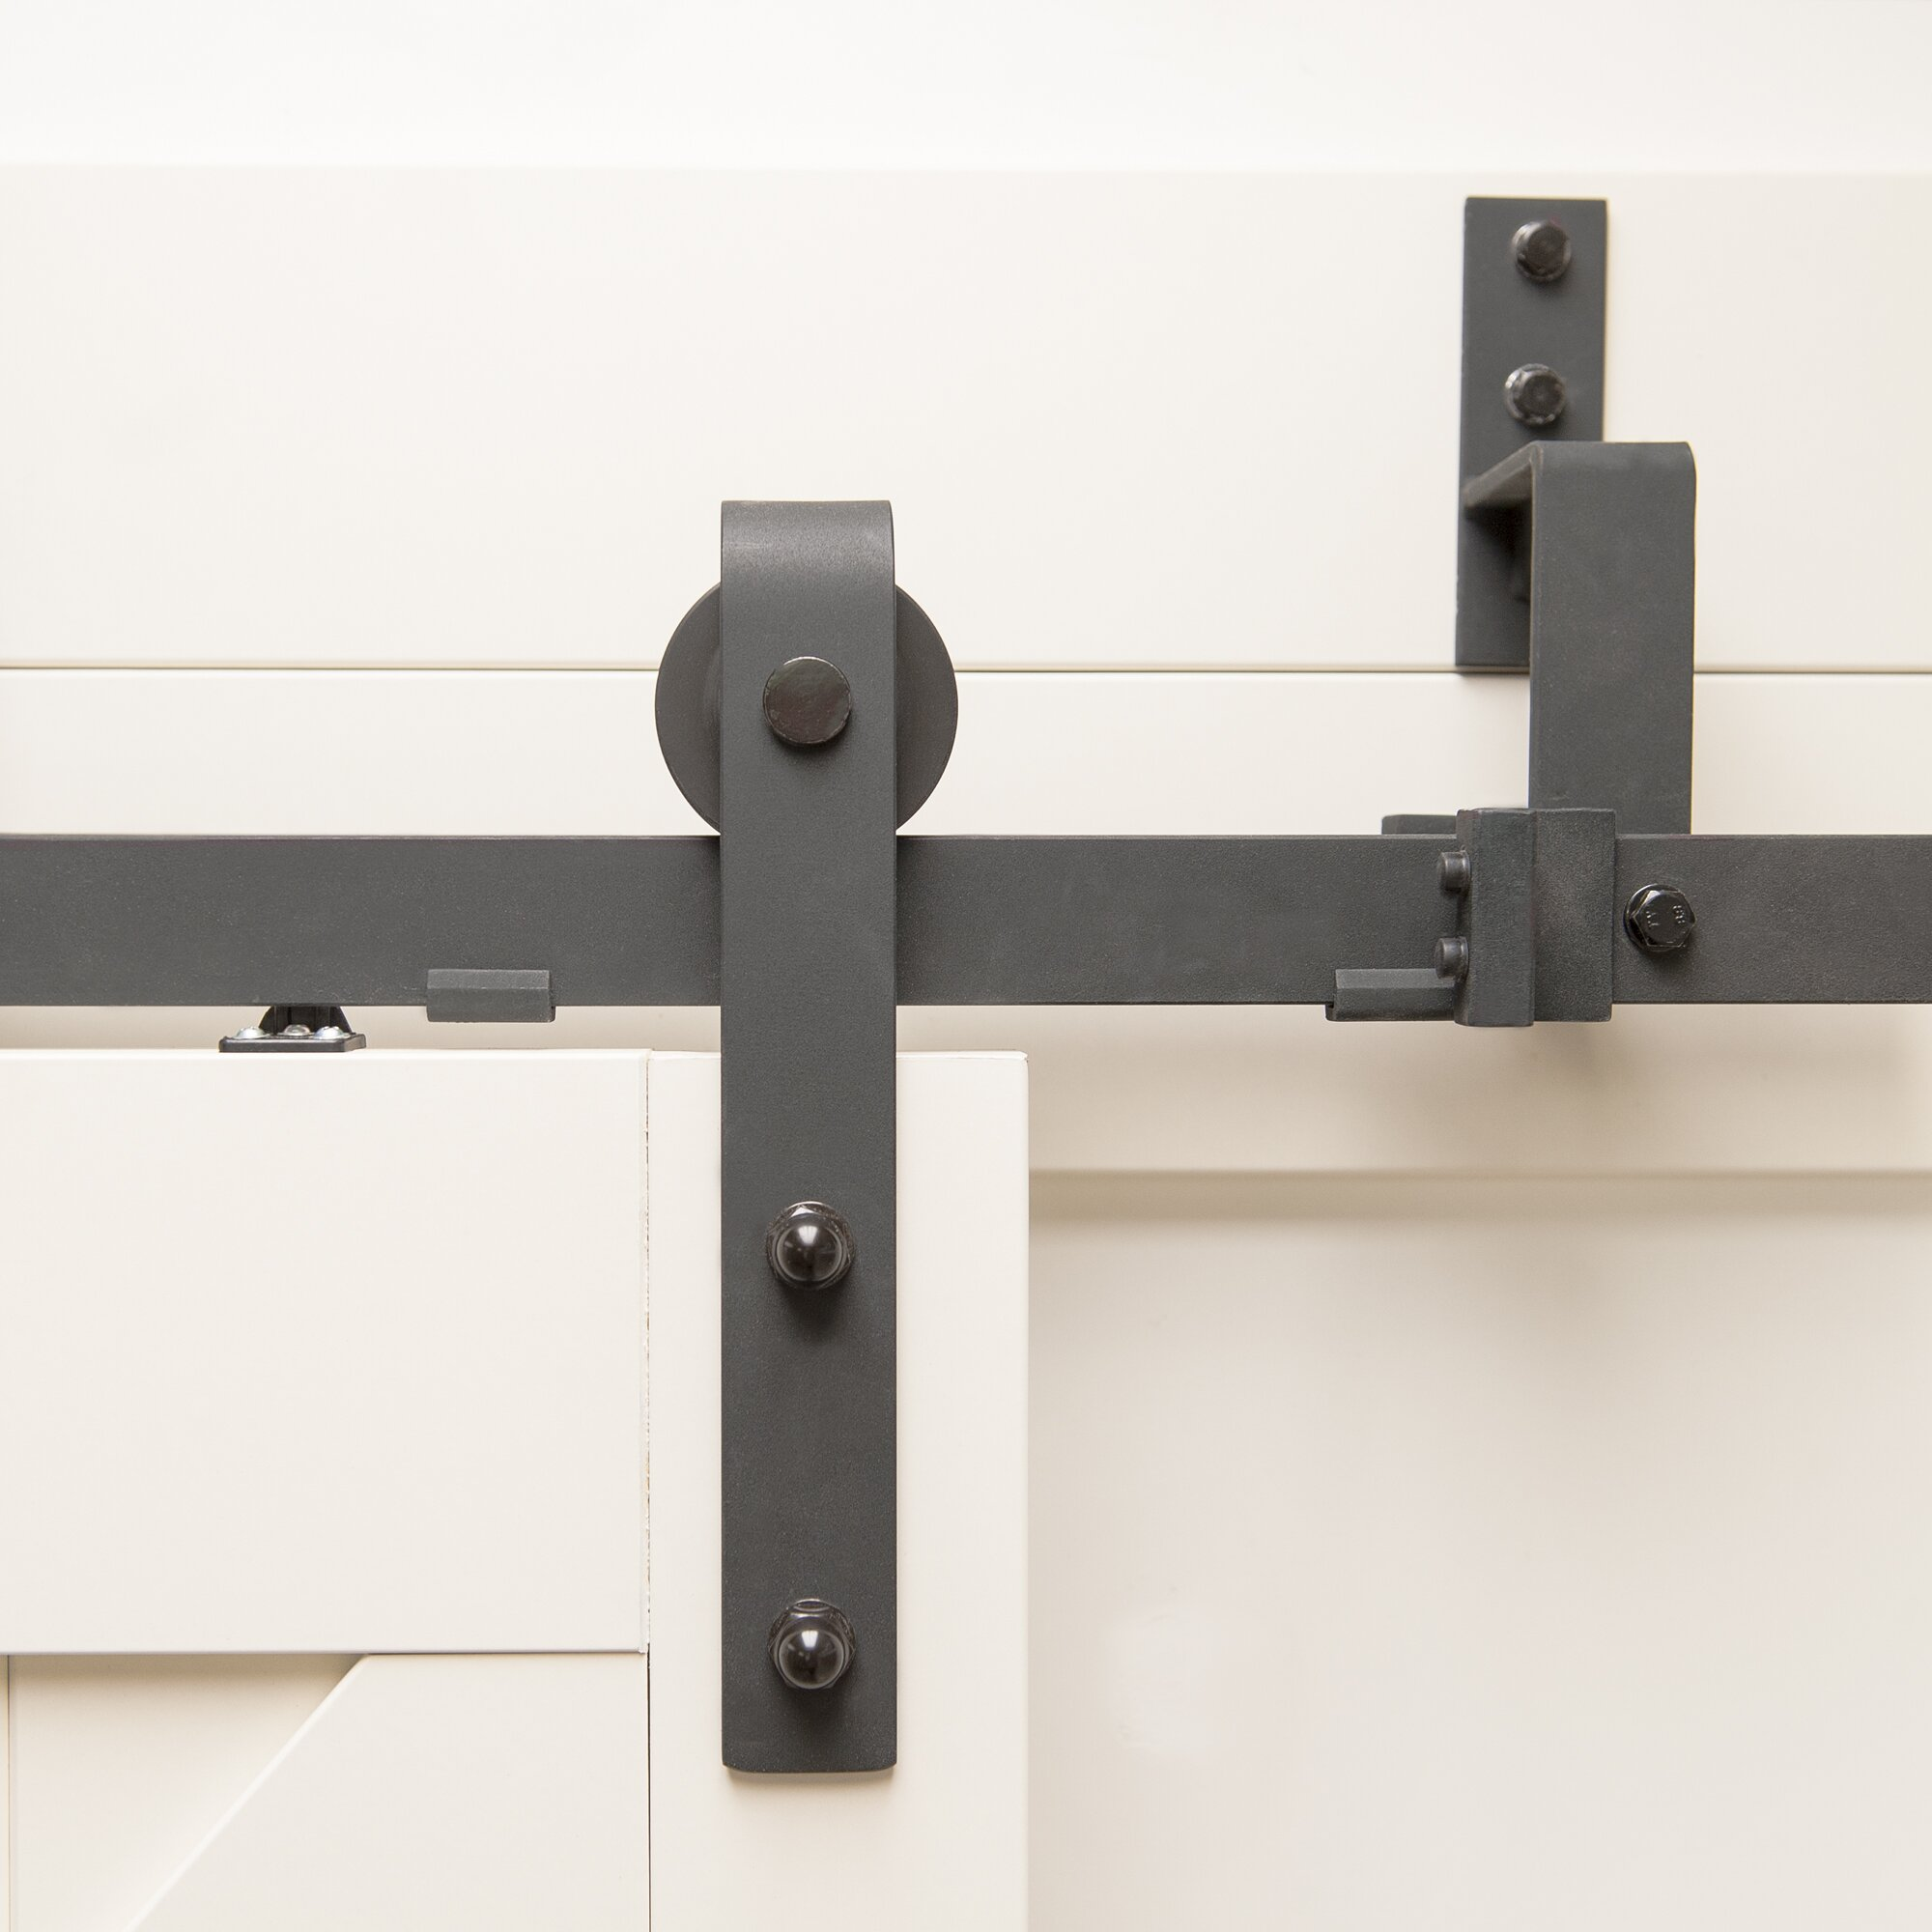 easy clip soft close barn door hardware kit - Erias Home Designs